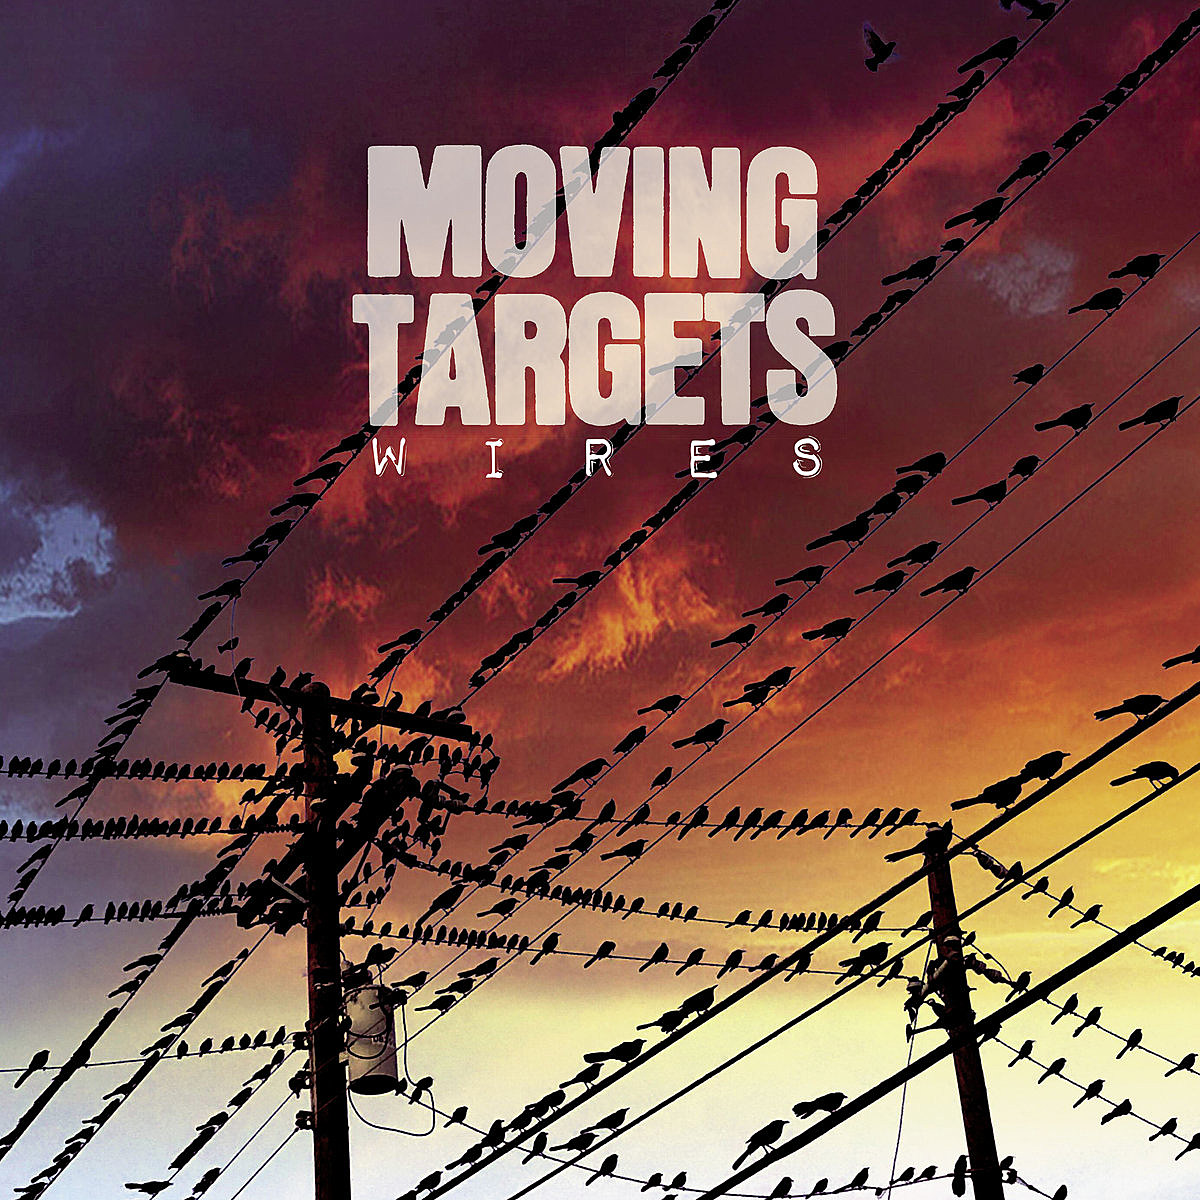 Moving Targets Wires